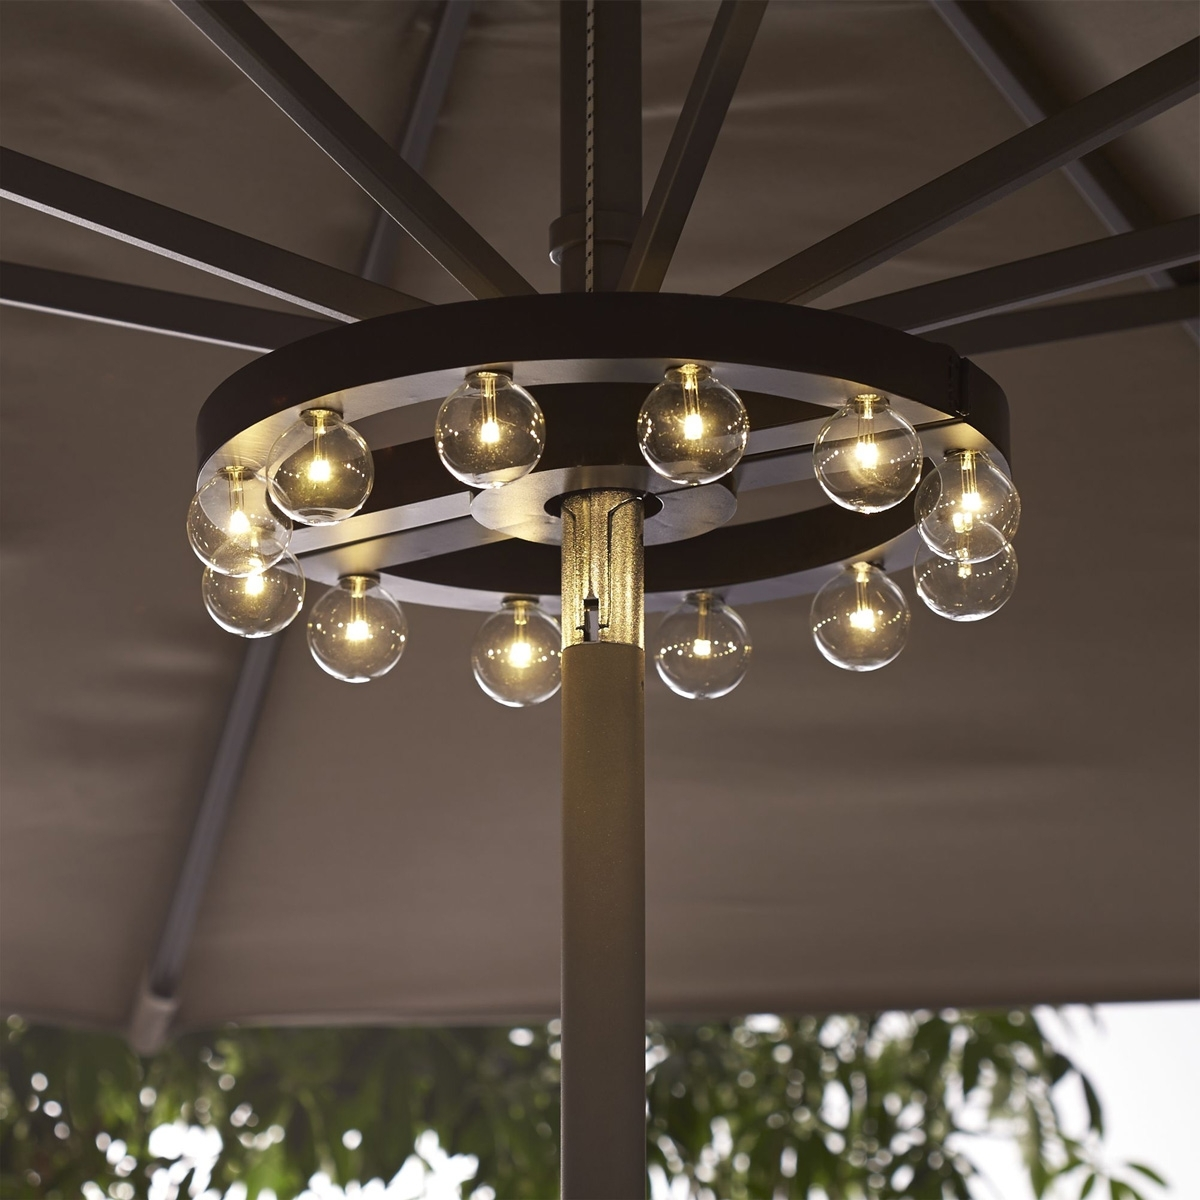 Current Lighted Patio Umbrellas With Regard To Patio Umbrella Light — Mistikcamping Home Design : Different Patio (View 4 of 20)